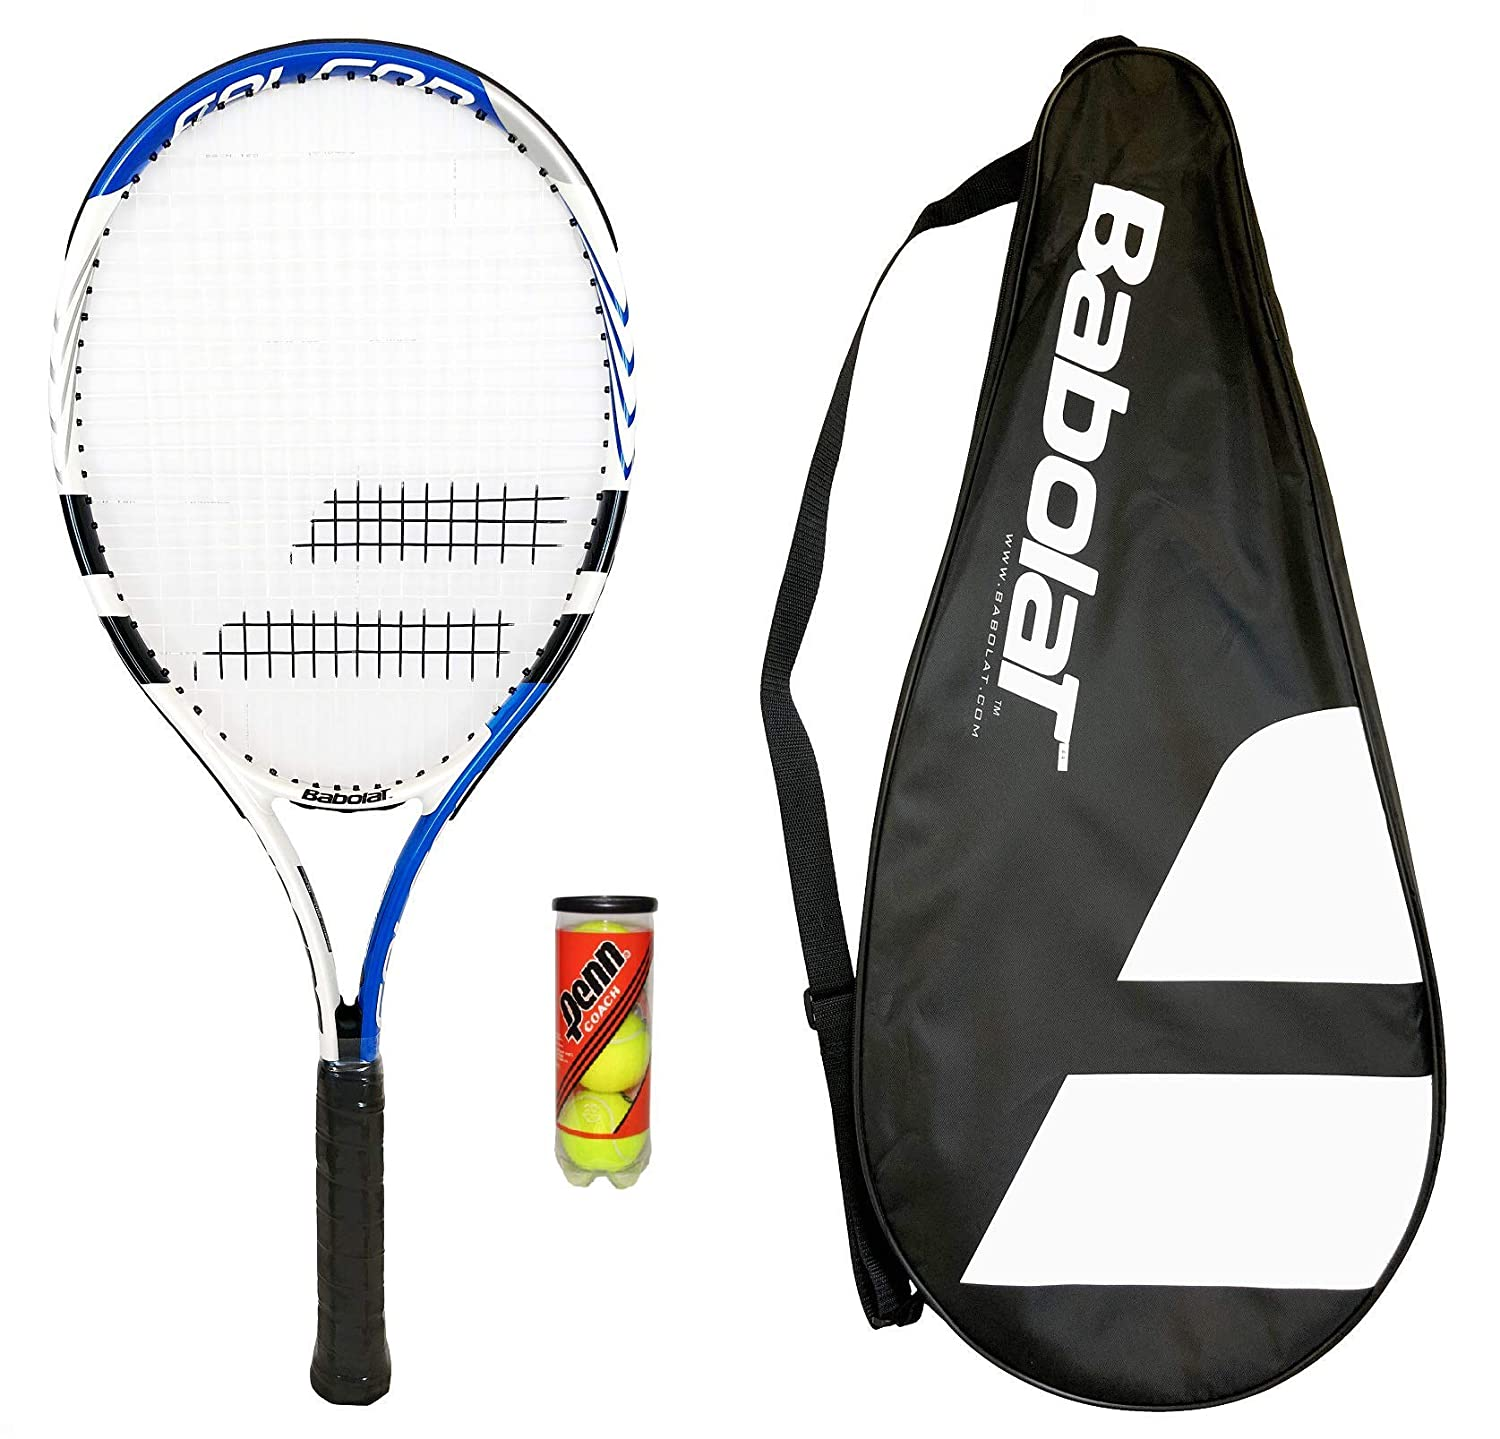 2732f38c39 Babolat 105 Tennis Racket + Carry Case + 3 Tennis Balls: Amazon.co.uk:  Sports & Outdoors